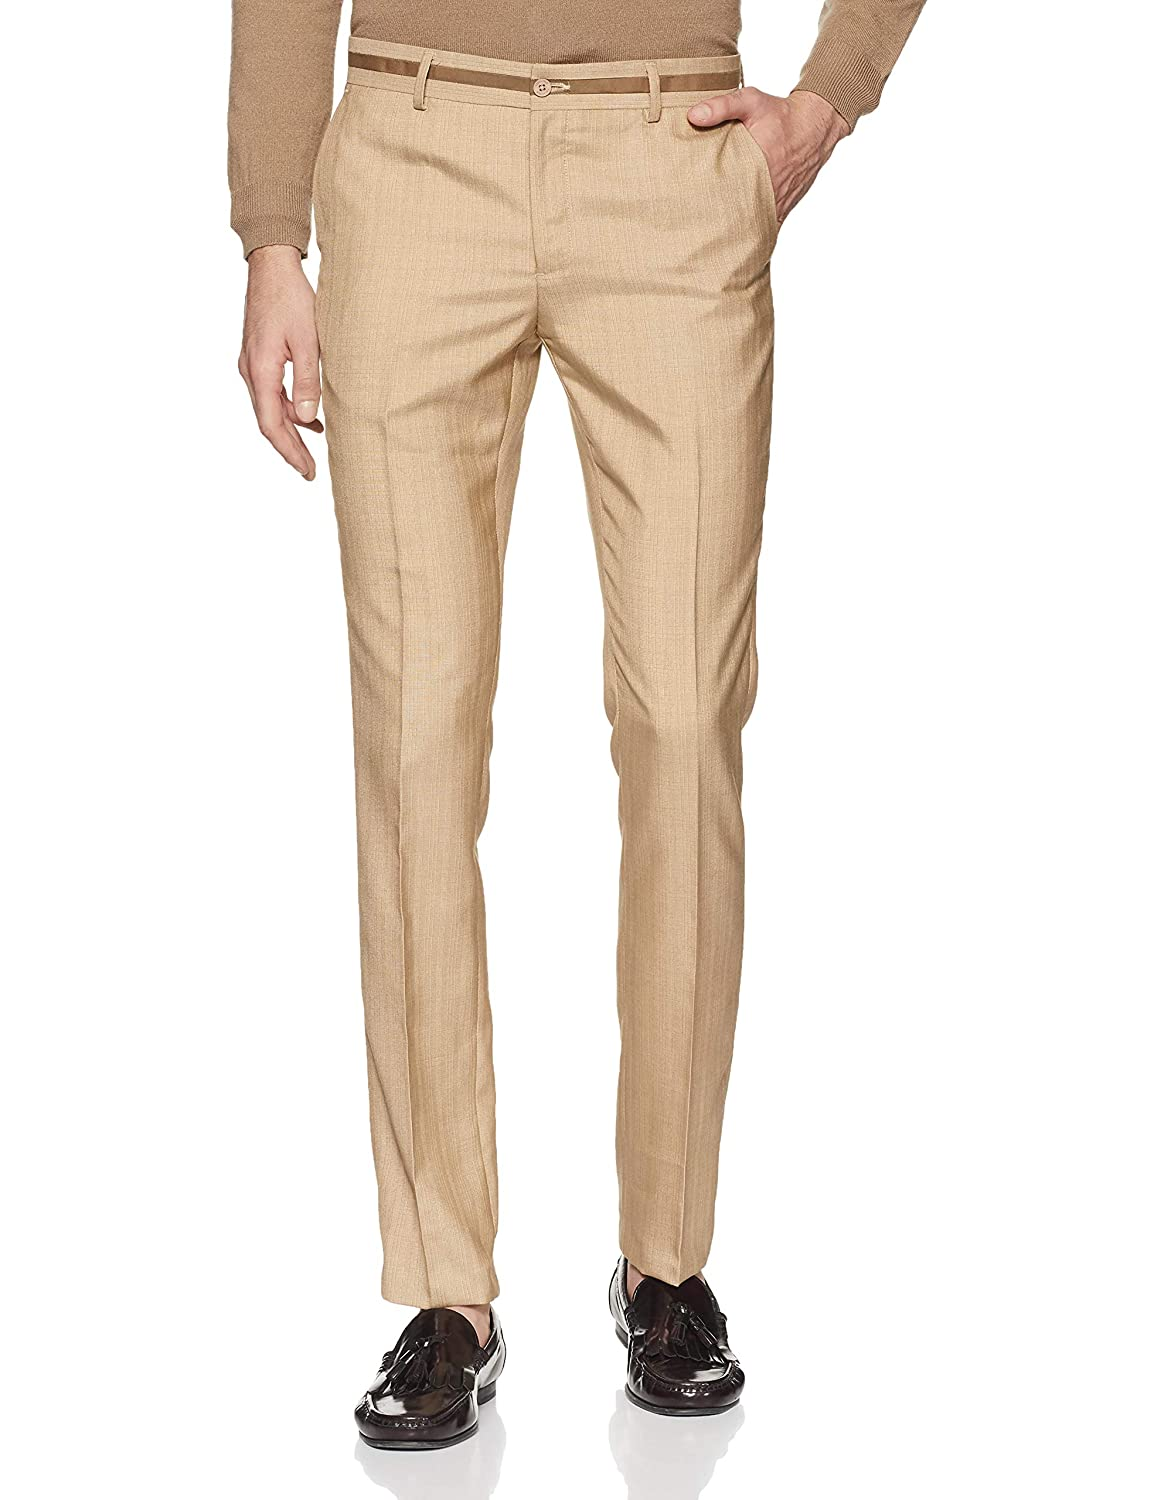 Excalibur by Unlimited Men's Skinny Fit Formal Trousers